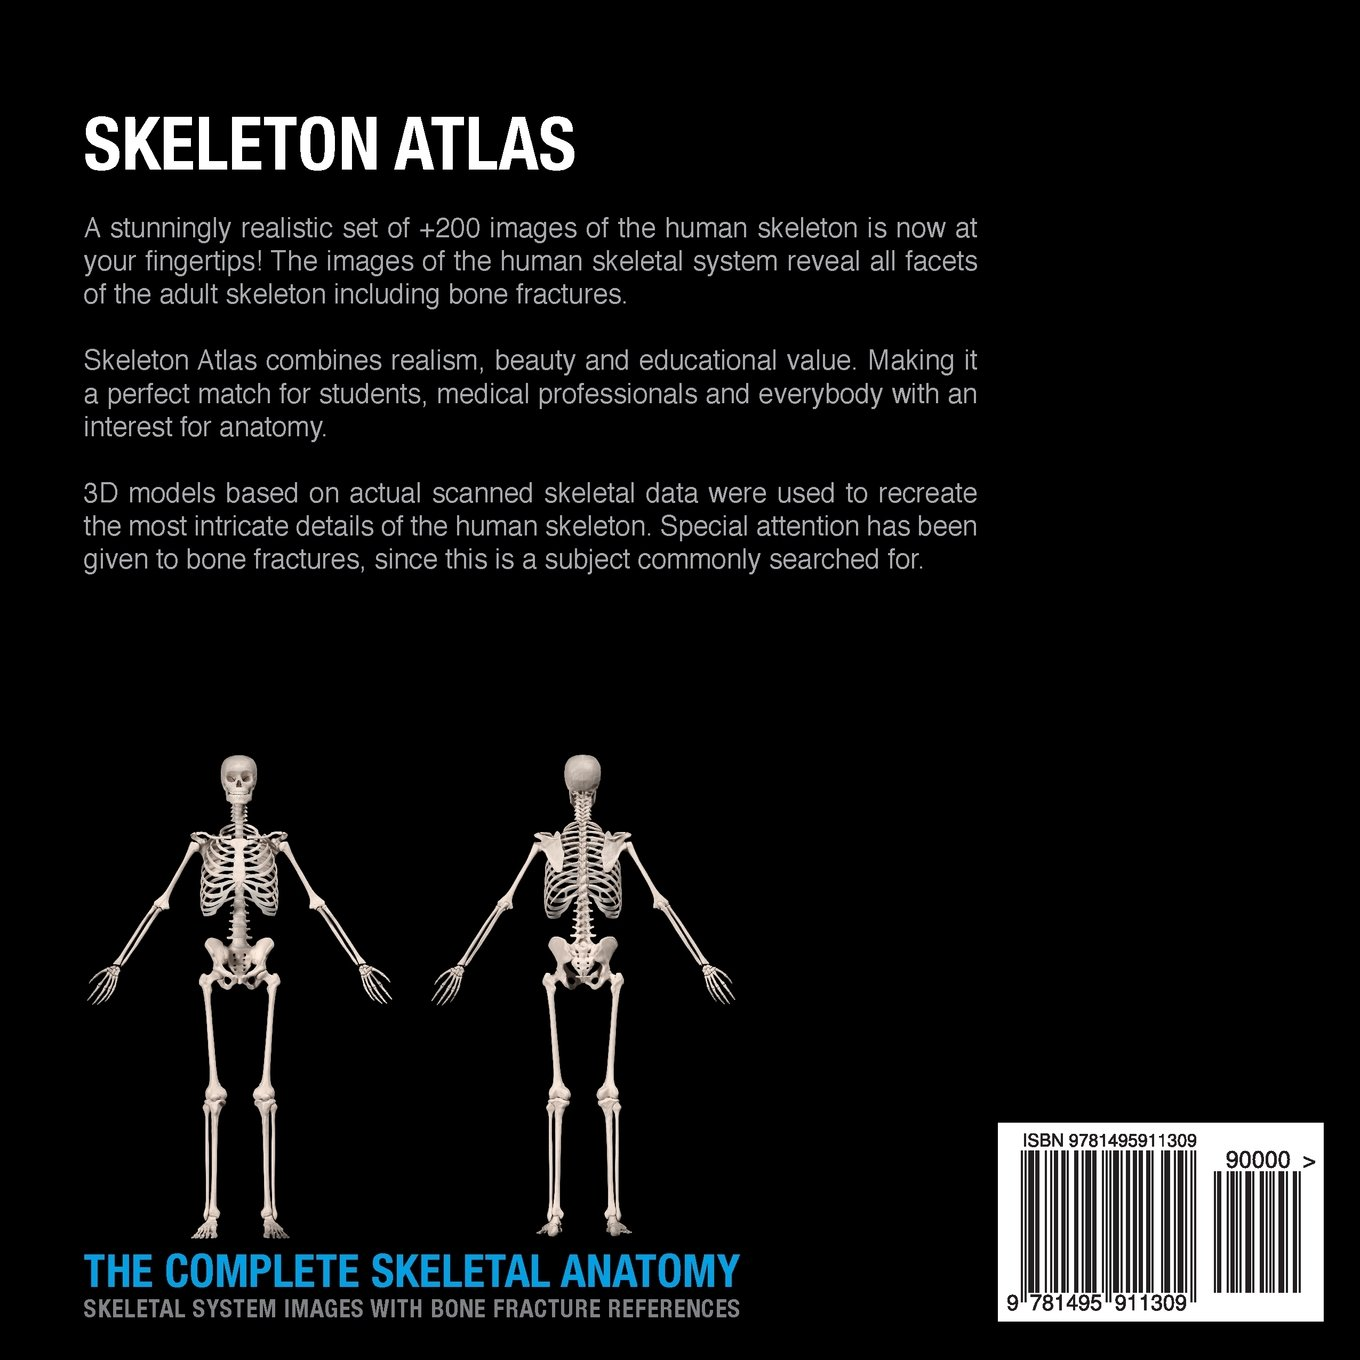 Skeleton atlas the complete skeletal anatomy skeletal system skeleton atlas the complete skeletal anatomy skeletal system images with bone fracture references david marchal 9781495911309 amazon books fandeluxe Images